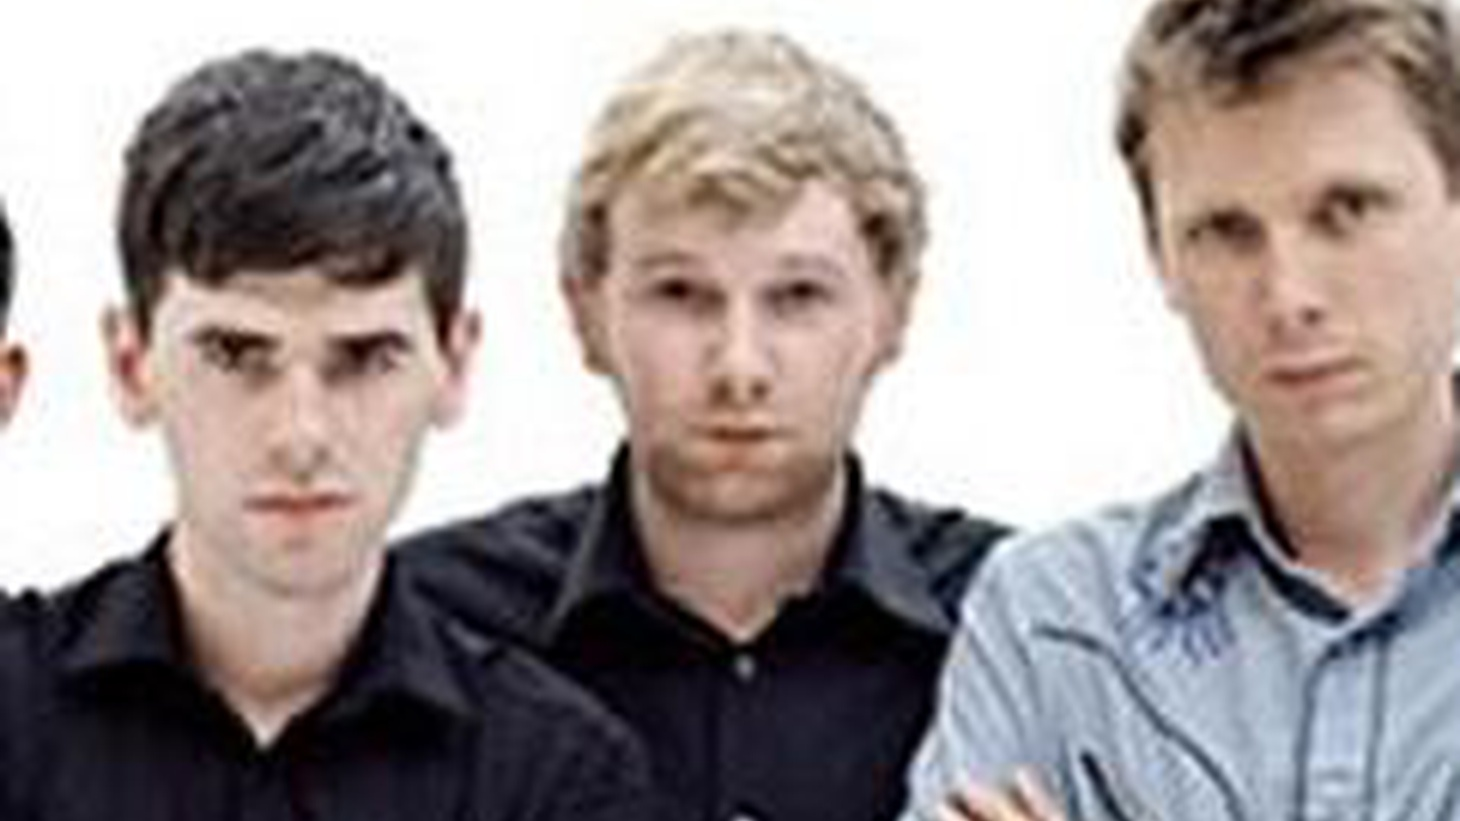 Scottish quartet Franz Ferdinand brings its rockin' good sound to Morning Becomes Eclectic in their first North American live radio performance.